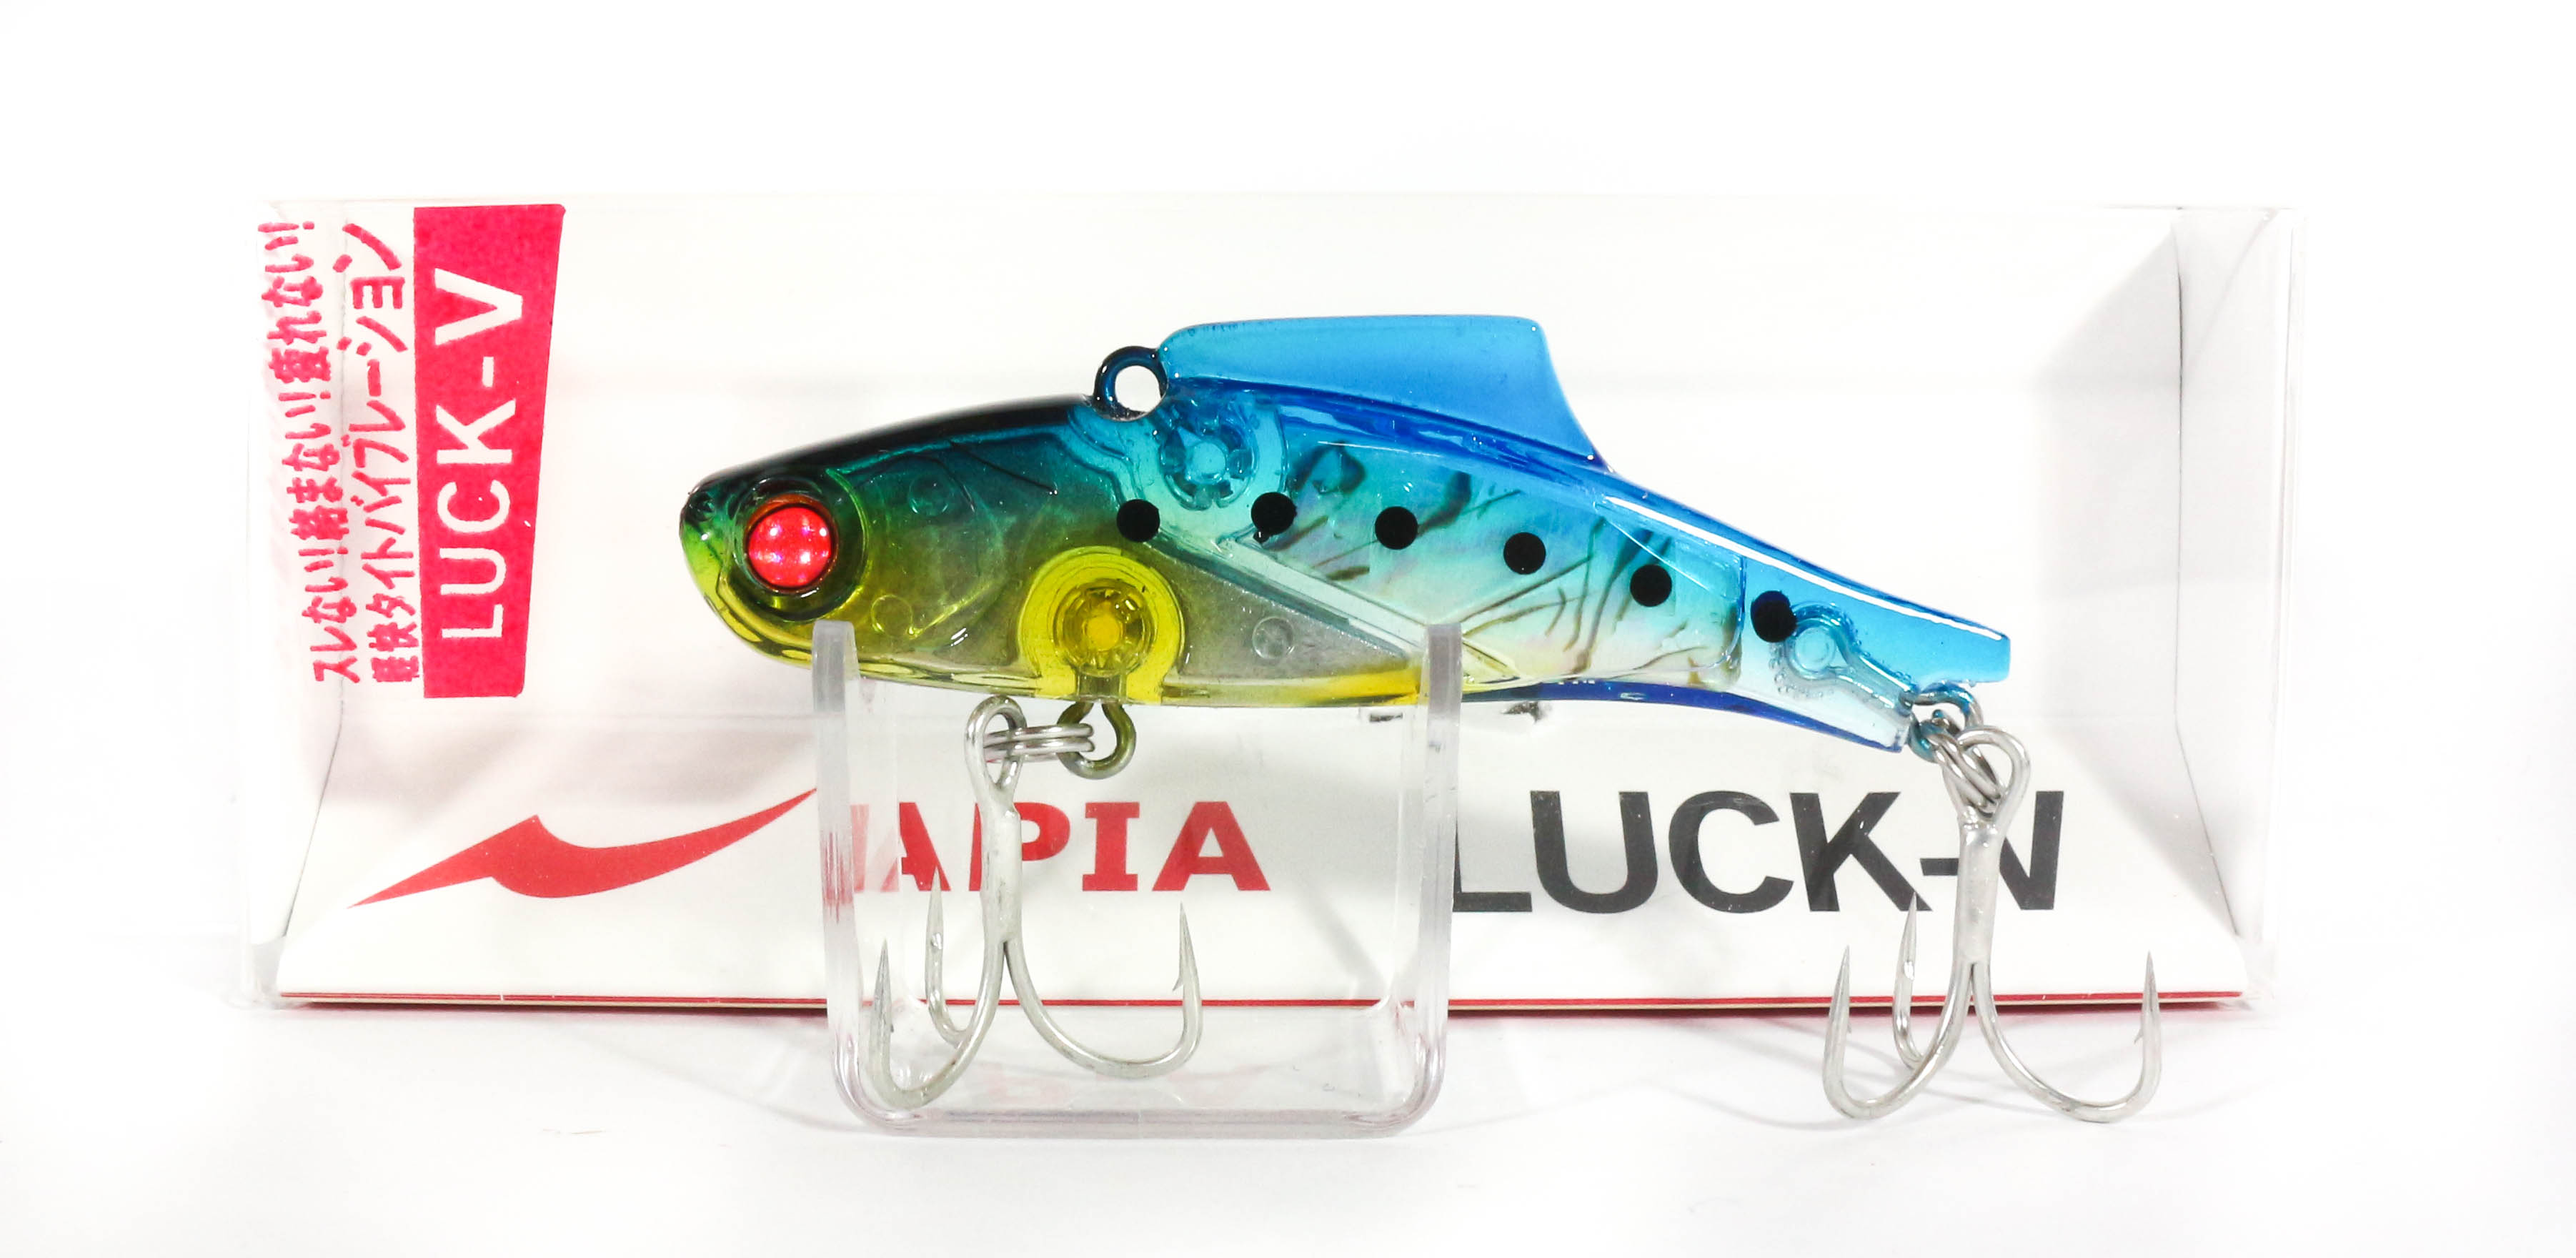 Apia Luck-V Vibration 15 grams Sinking Lure 101 (0362)